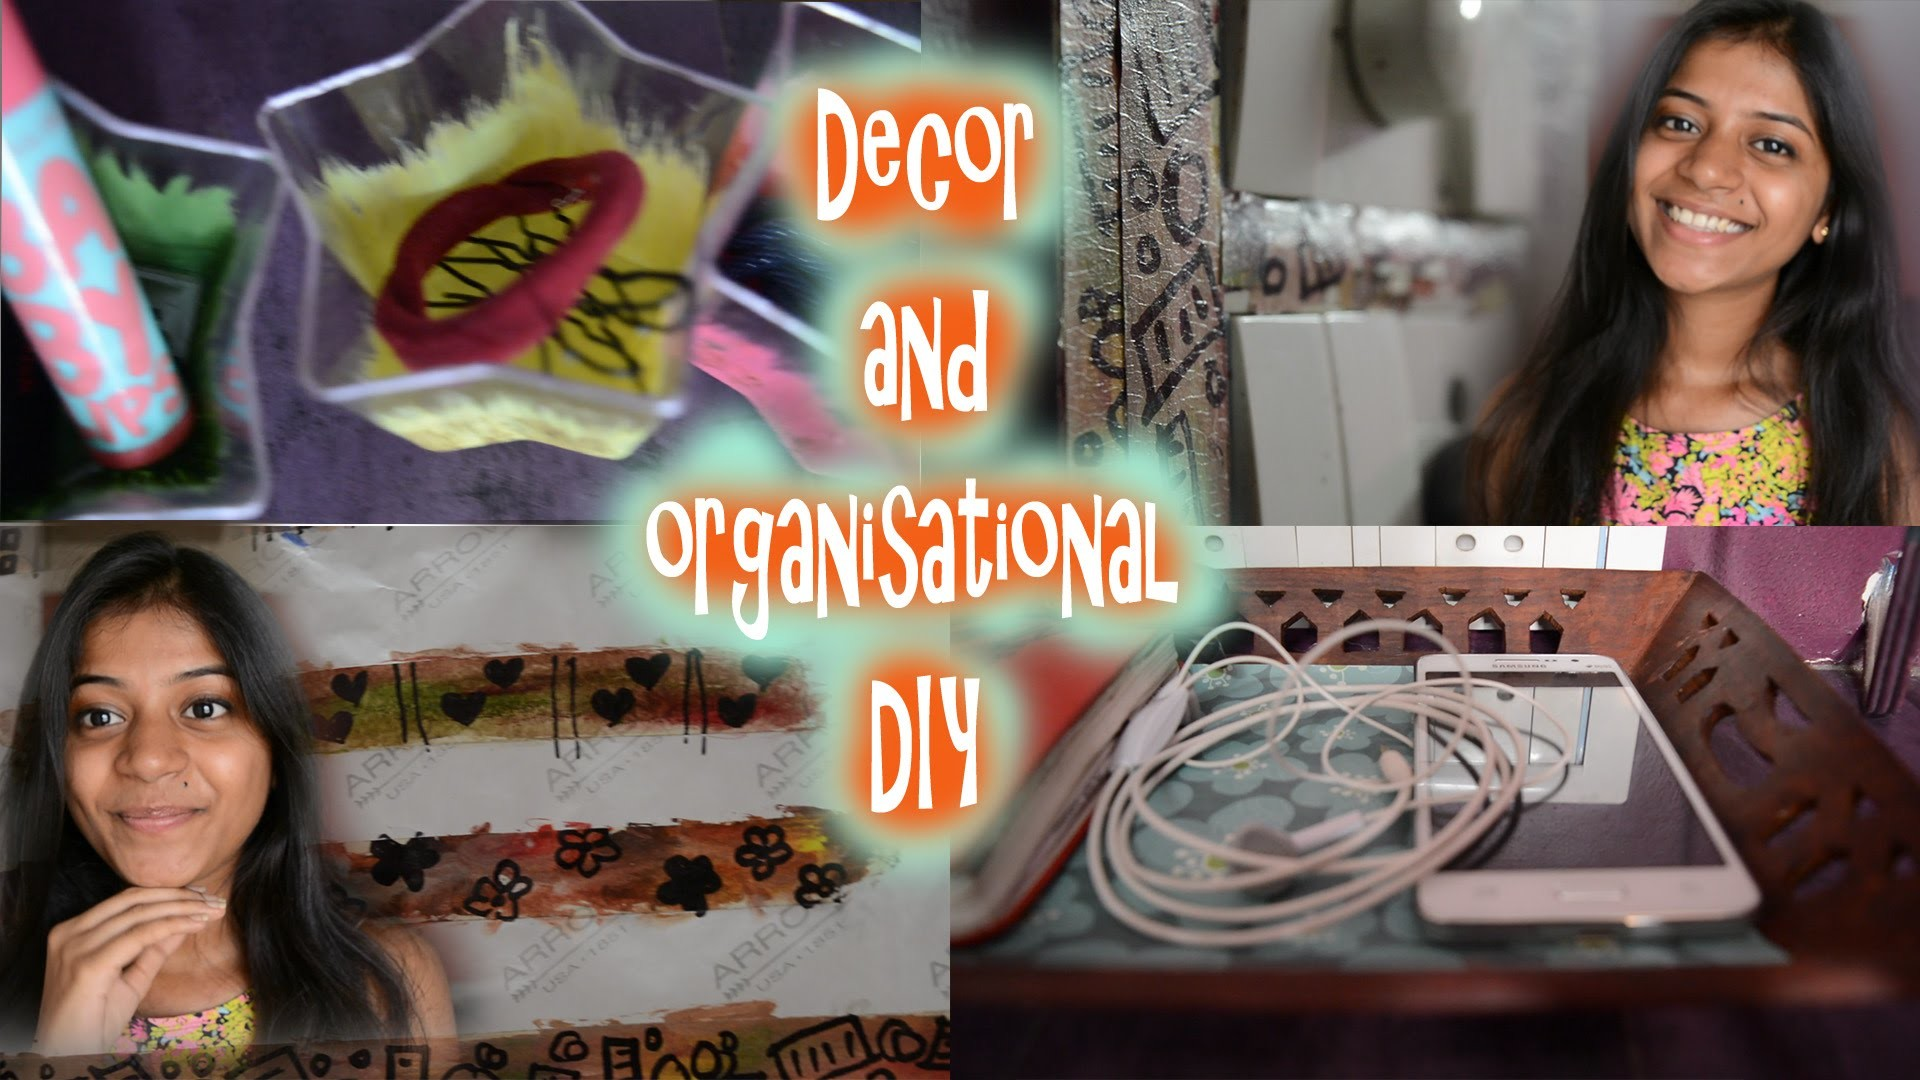 Decor and organizational DIY | Neesome DIY